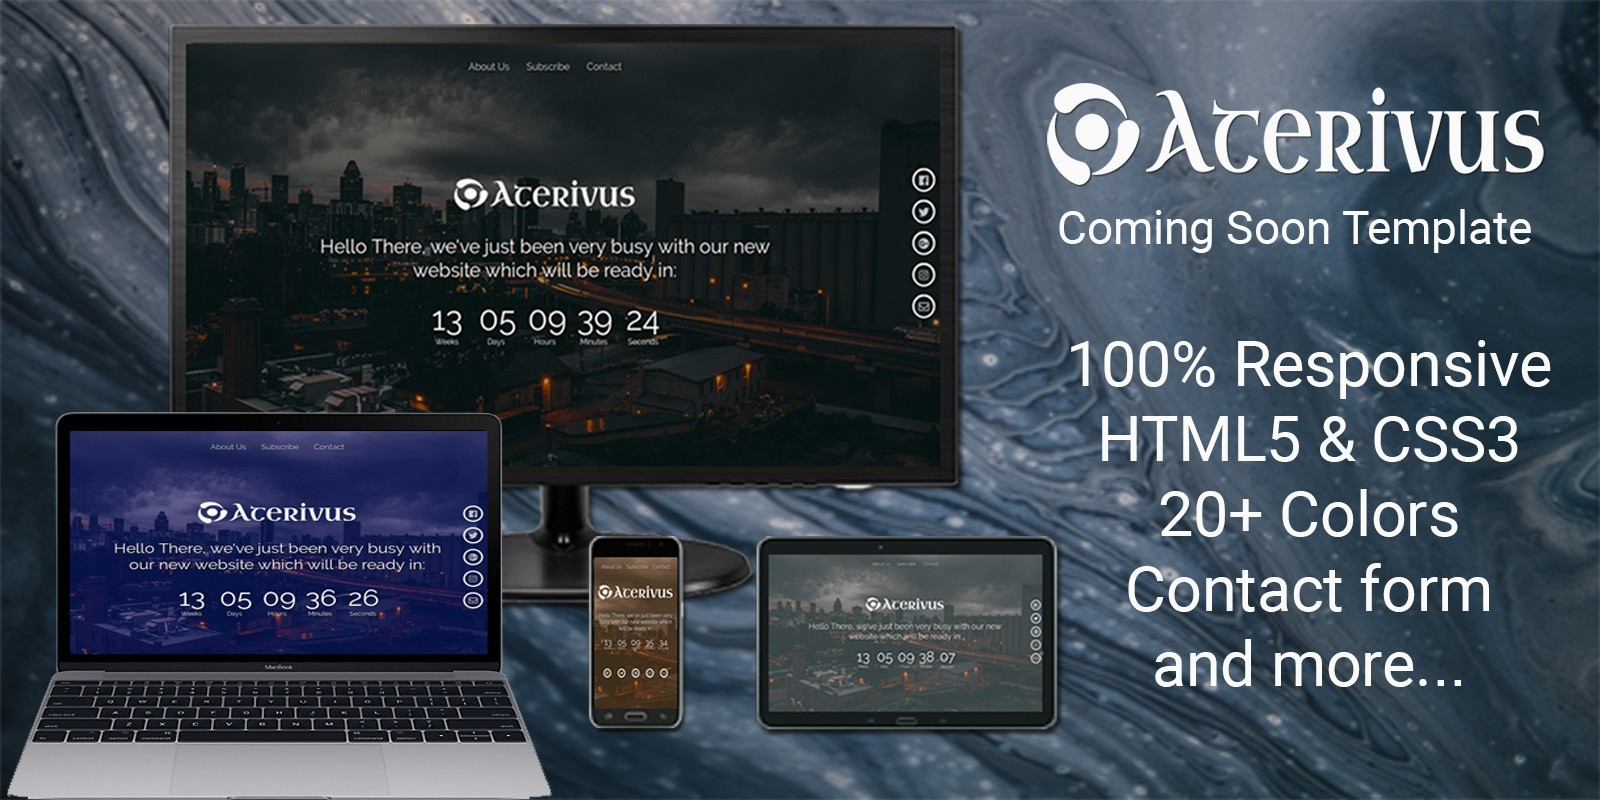 Aterivus - Coming Soon Template